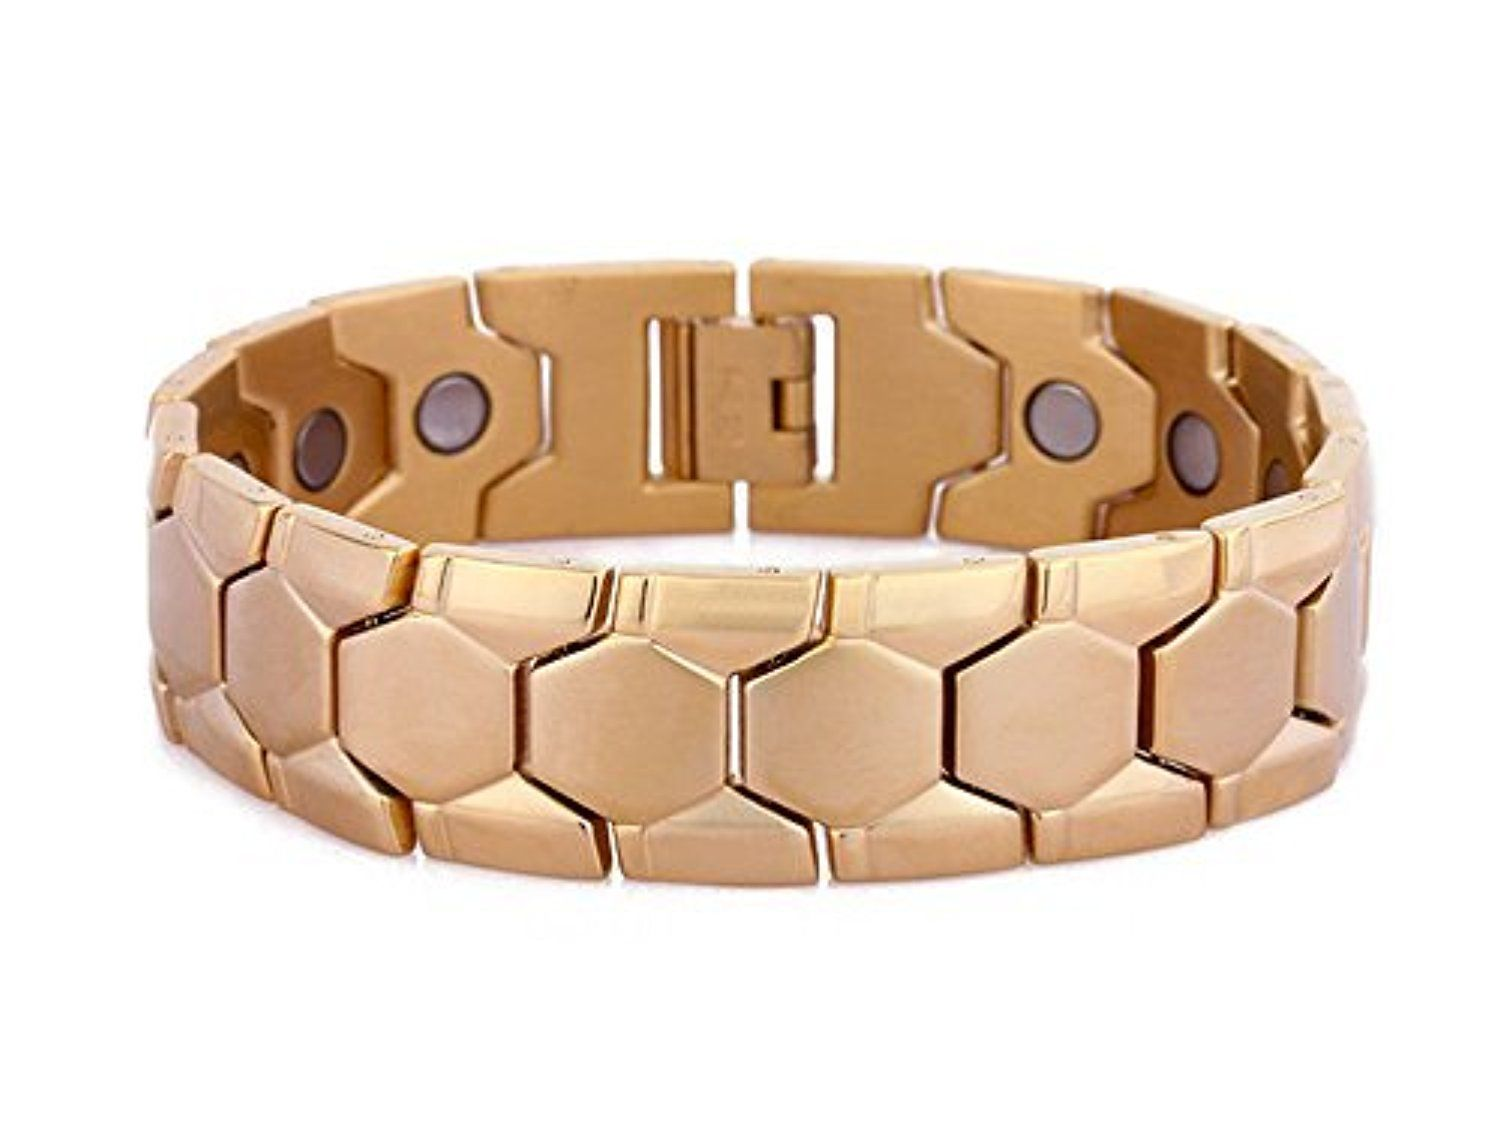 Gg mens gold tone four element titanium magnetic bracelet stainless